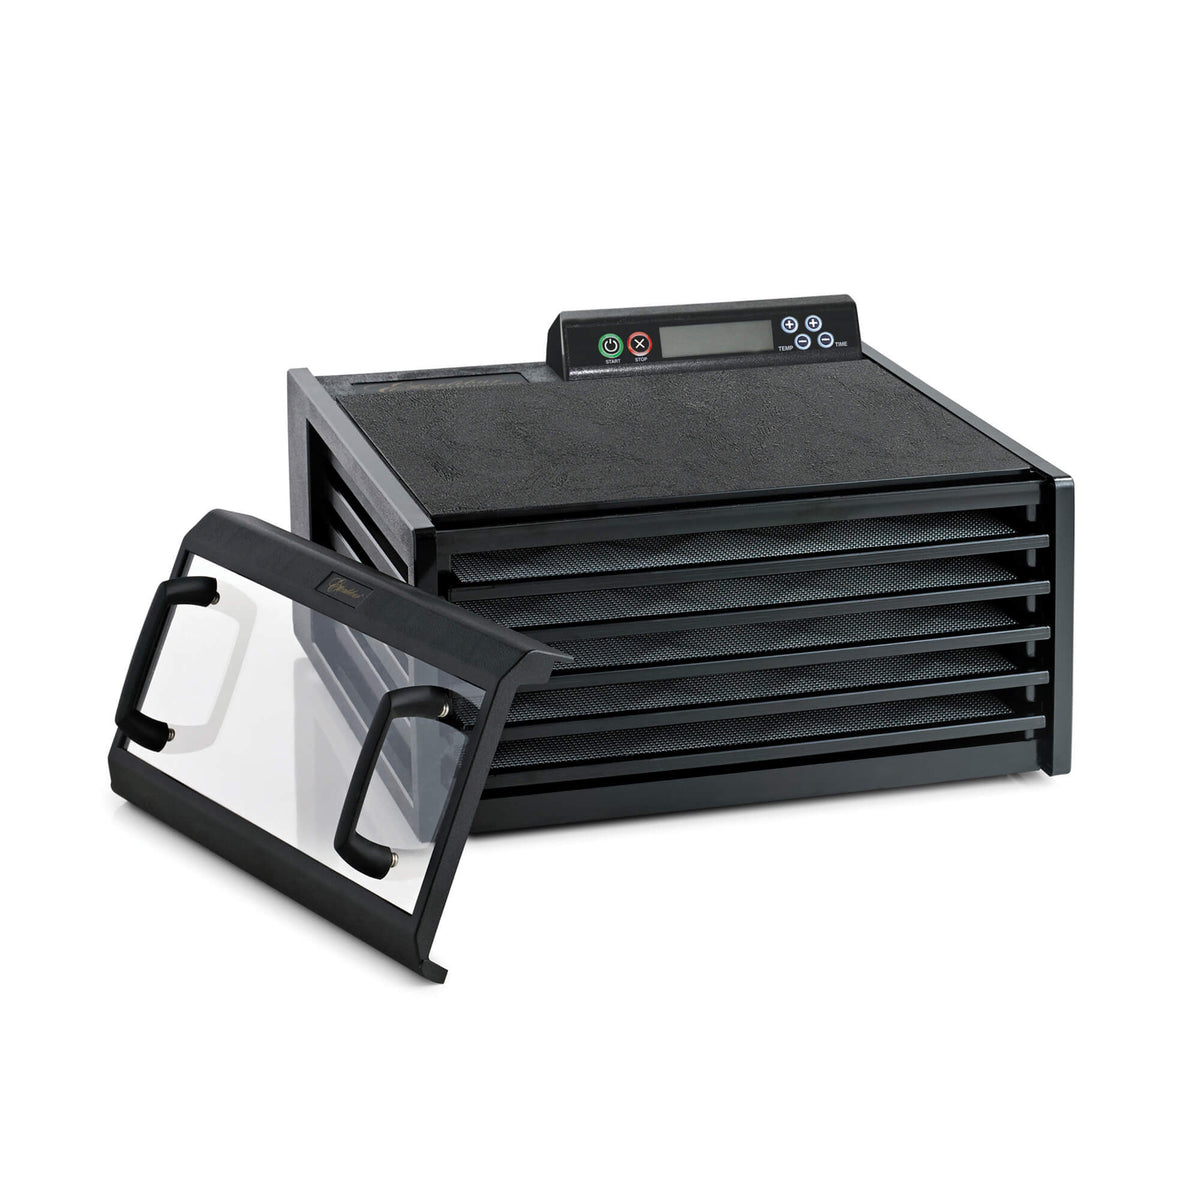 Excalibur 4548CDB 5 tray digital dehydrator with clear door propped to the side and trays in.